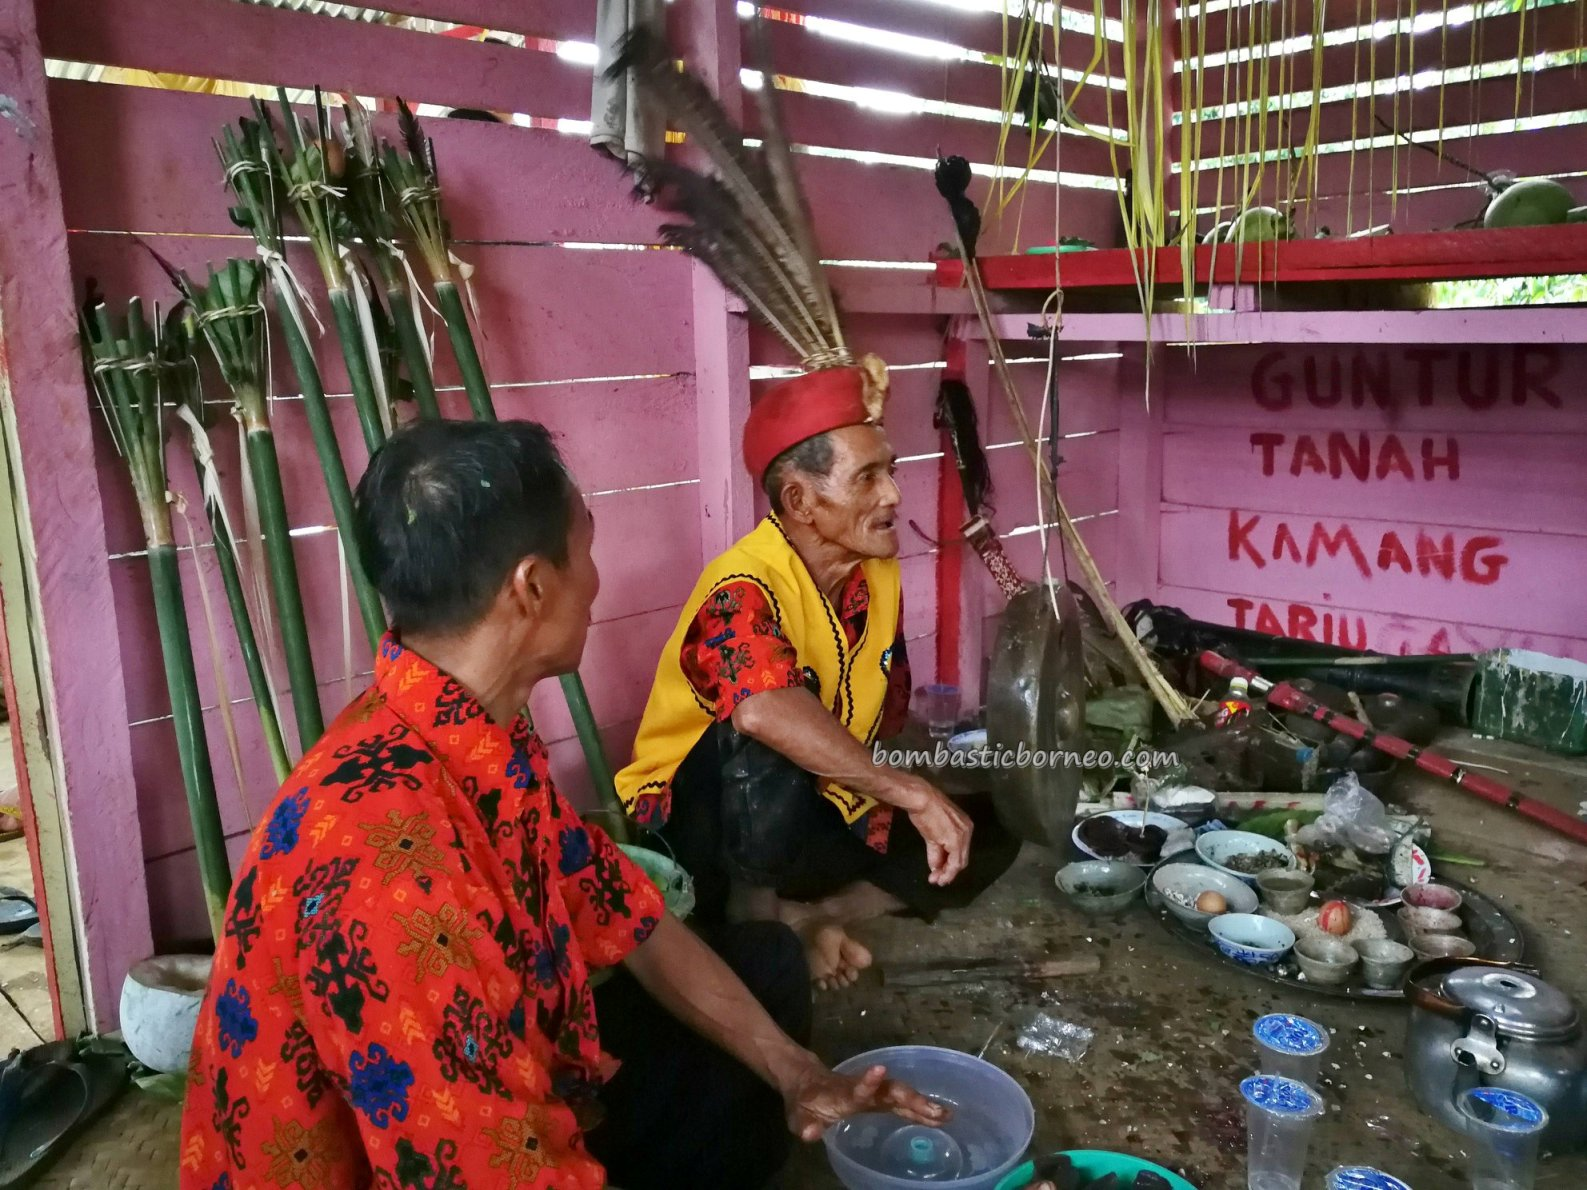 Gawai Dayak, Nyabakng, paddy harvest festival, authentic village, traditional, culture, ritual, skull cleansing, Borneo, Indonesia, West Kalimantan, Dusun Laek, native, Tourism, travel guide, crossborder